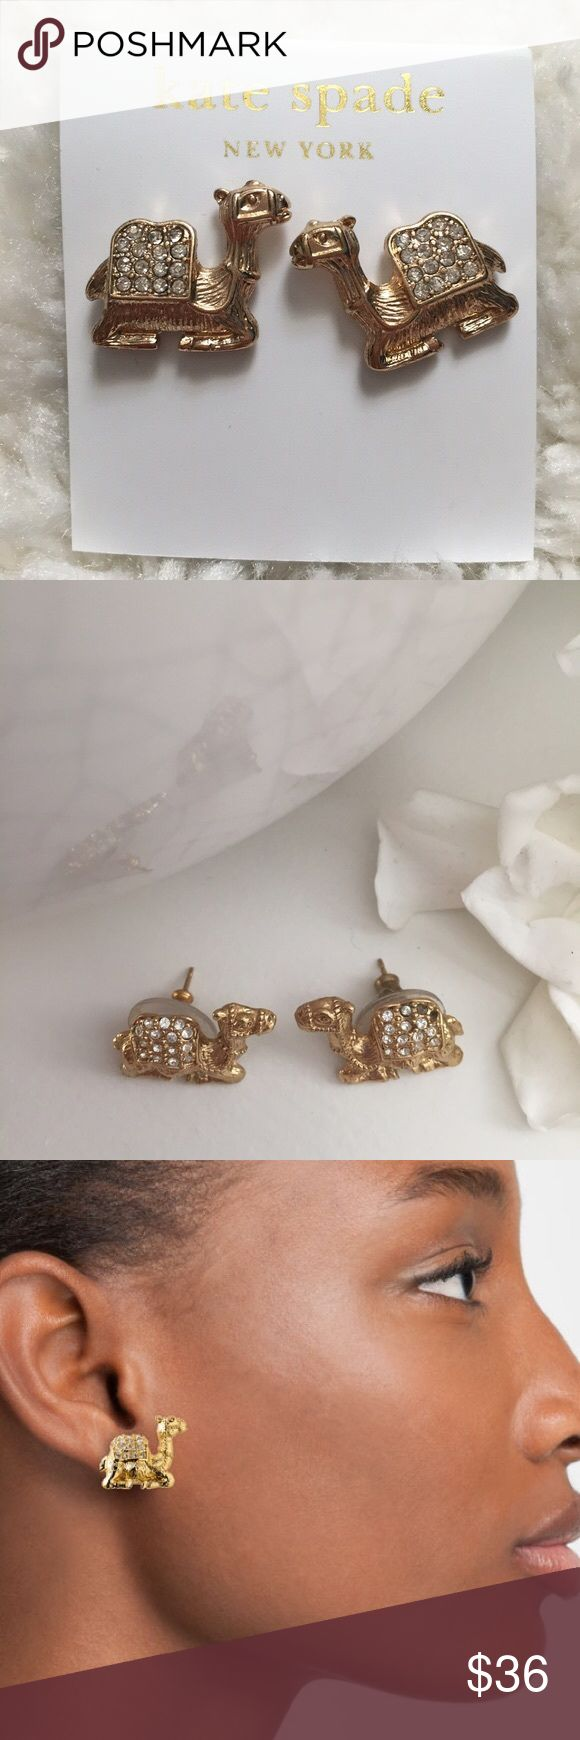 Kate Spade 'Wild One' camel 🐫 🐫earrings Guys. They're camels. You need these on your head. kate spade Jewelry Earrings